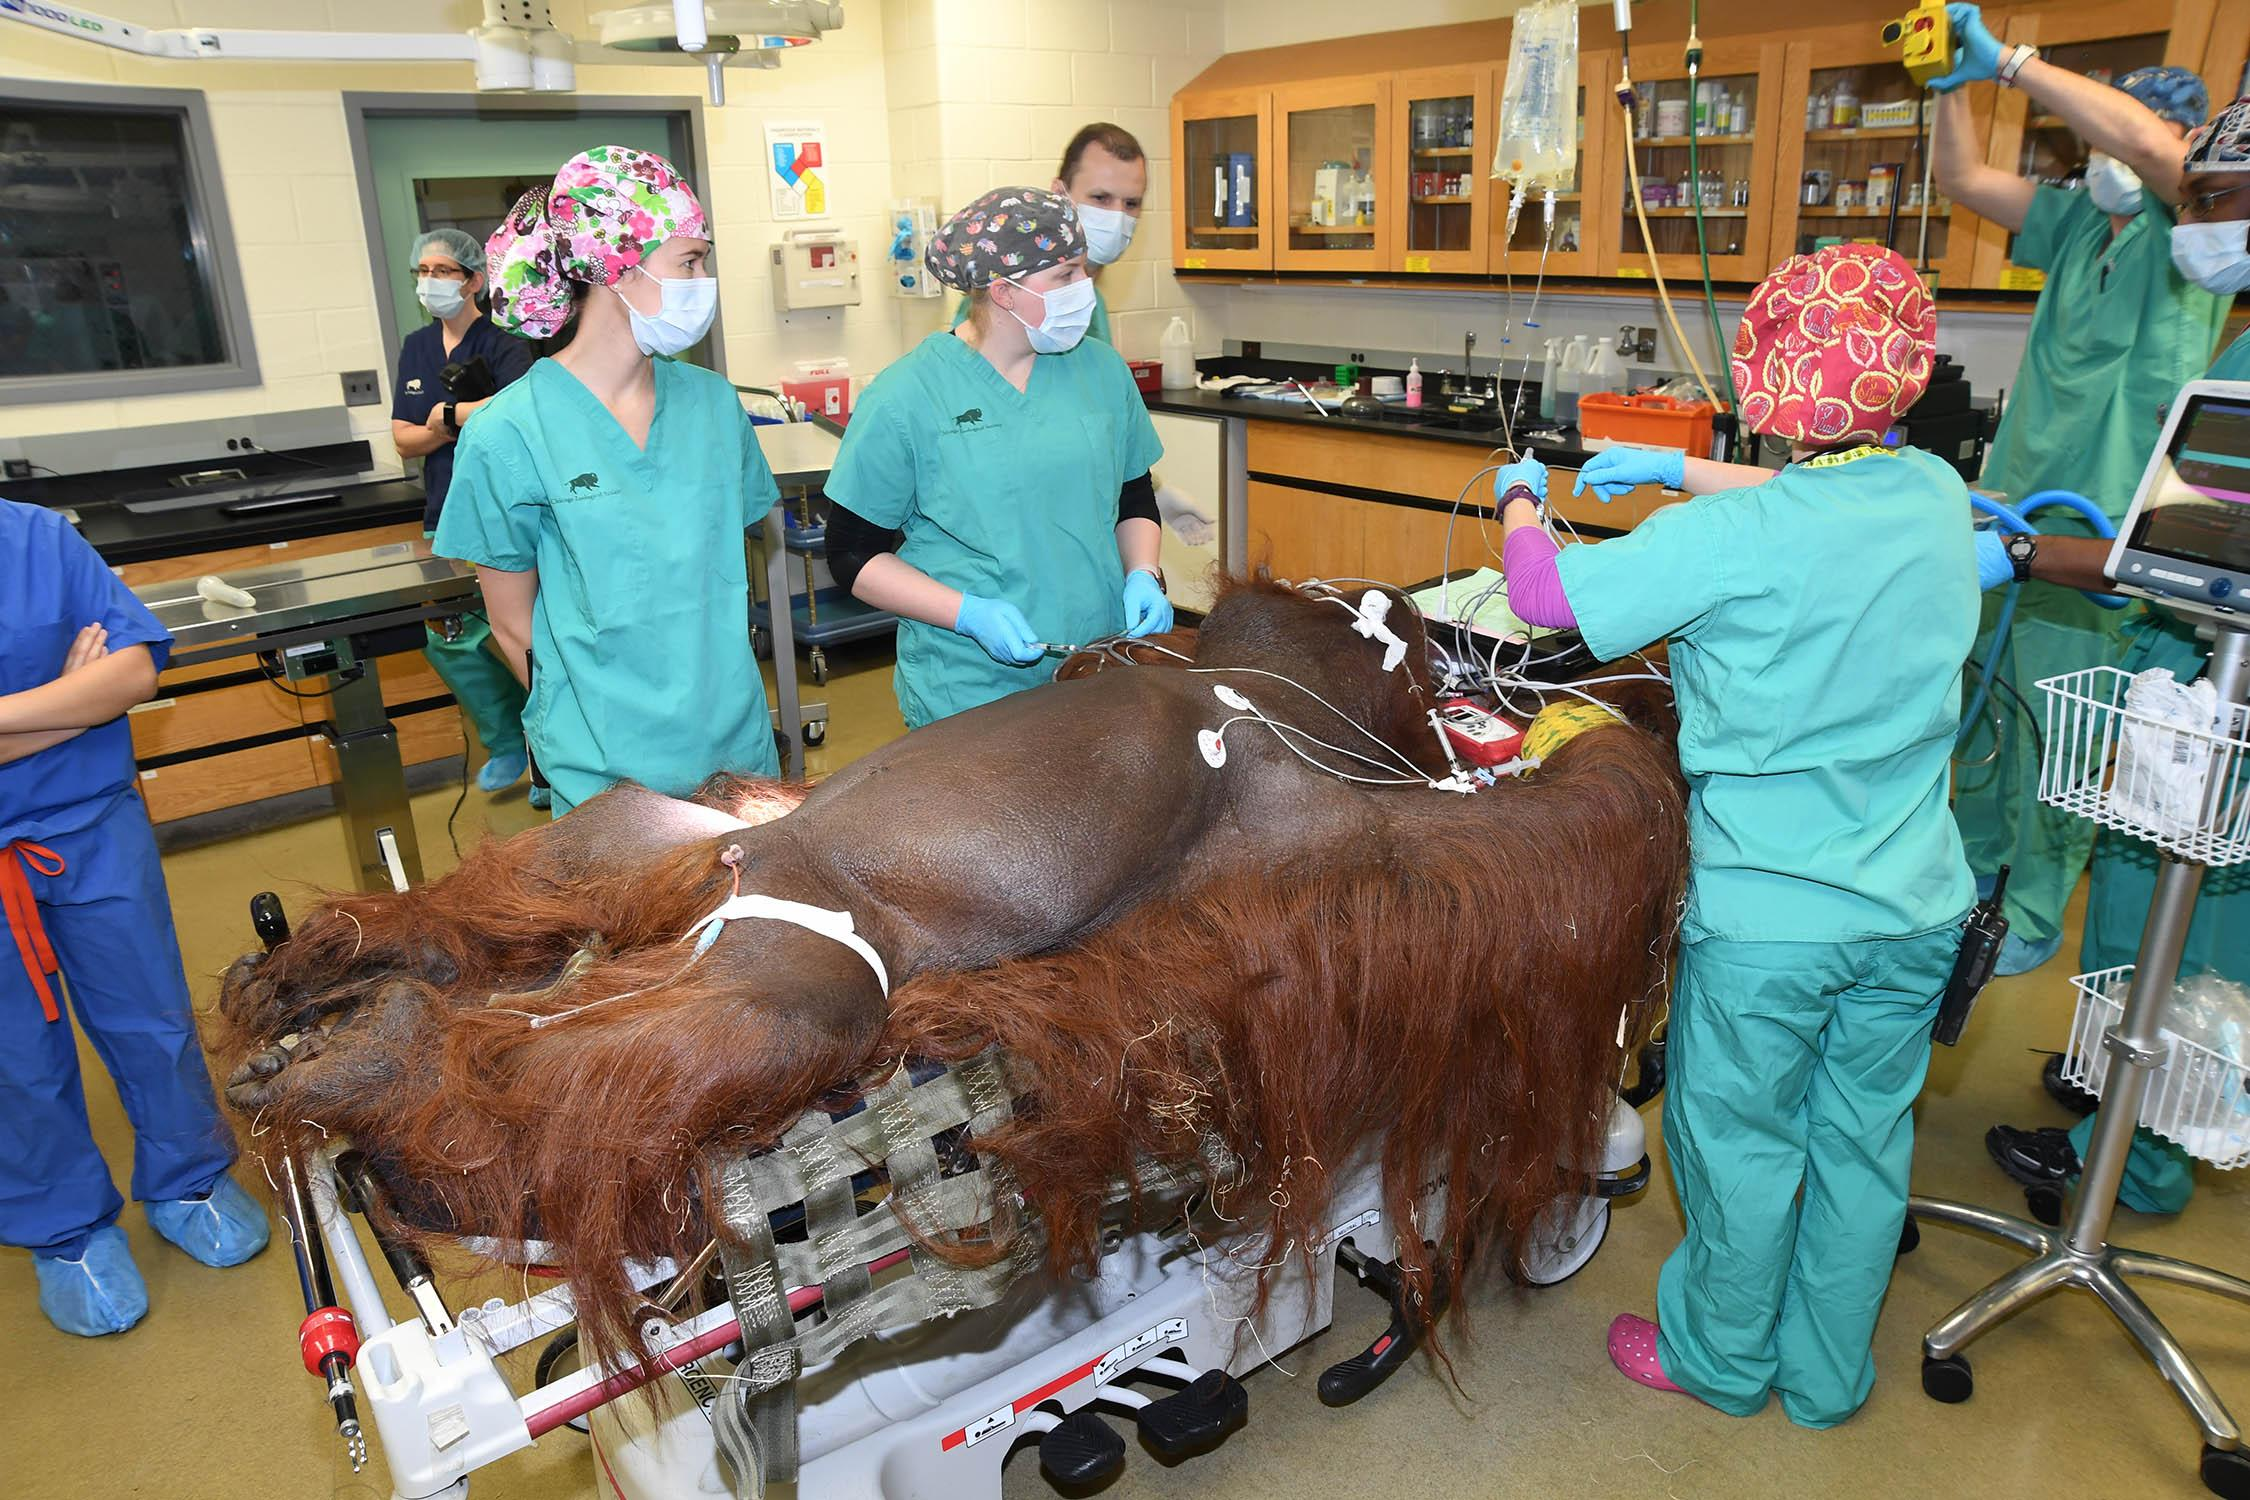 Ben, a 40-year-old orangutan at Brookfield Zoo, received an emergency appendectomy Jan. 23 to remove a ruptured appendix. (Jim Schulz / Chicago Zoological Society)